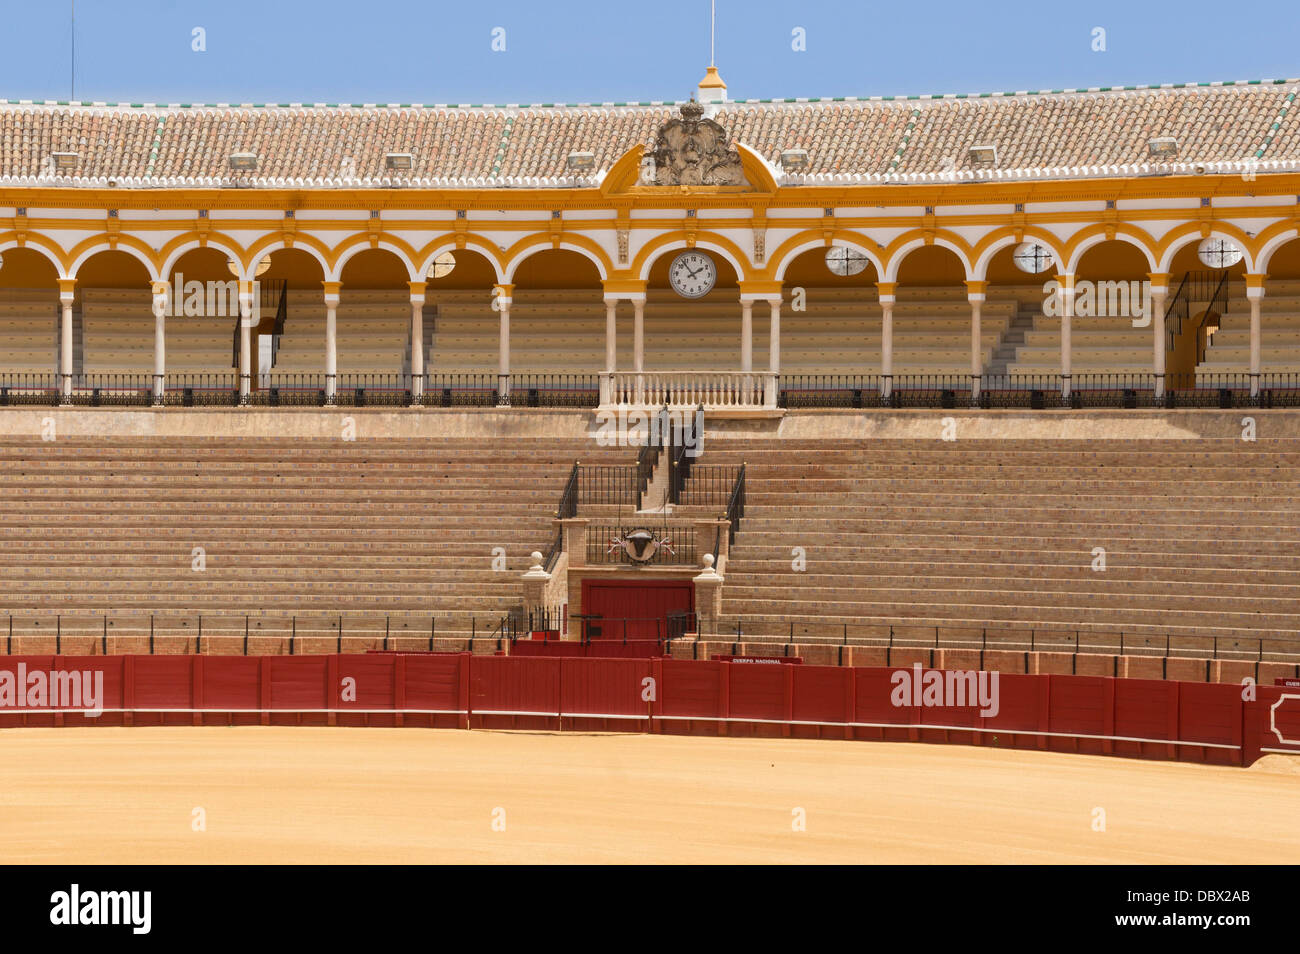 Detail of the bleachers and grandstands of the bullring of the Real Maestranza de Caballeria, Seville, Spain. - Stock Image